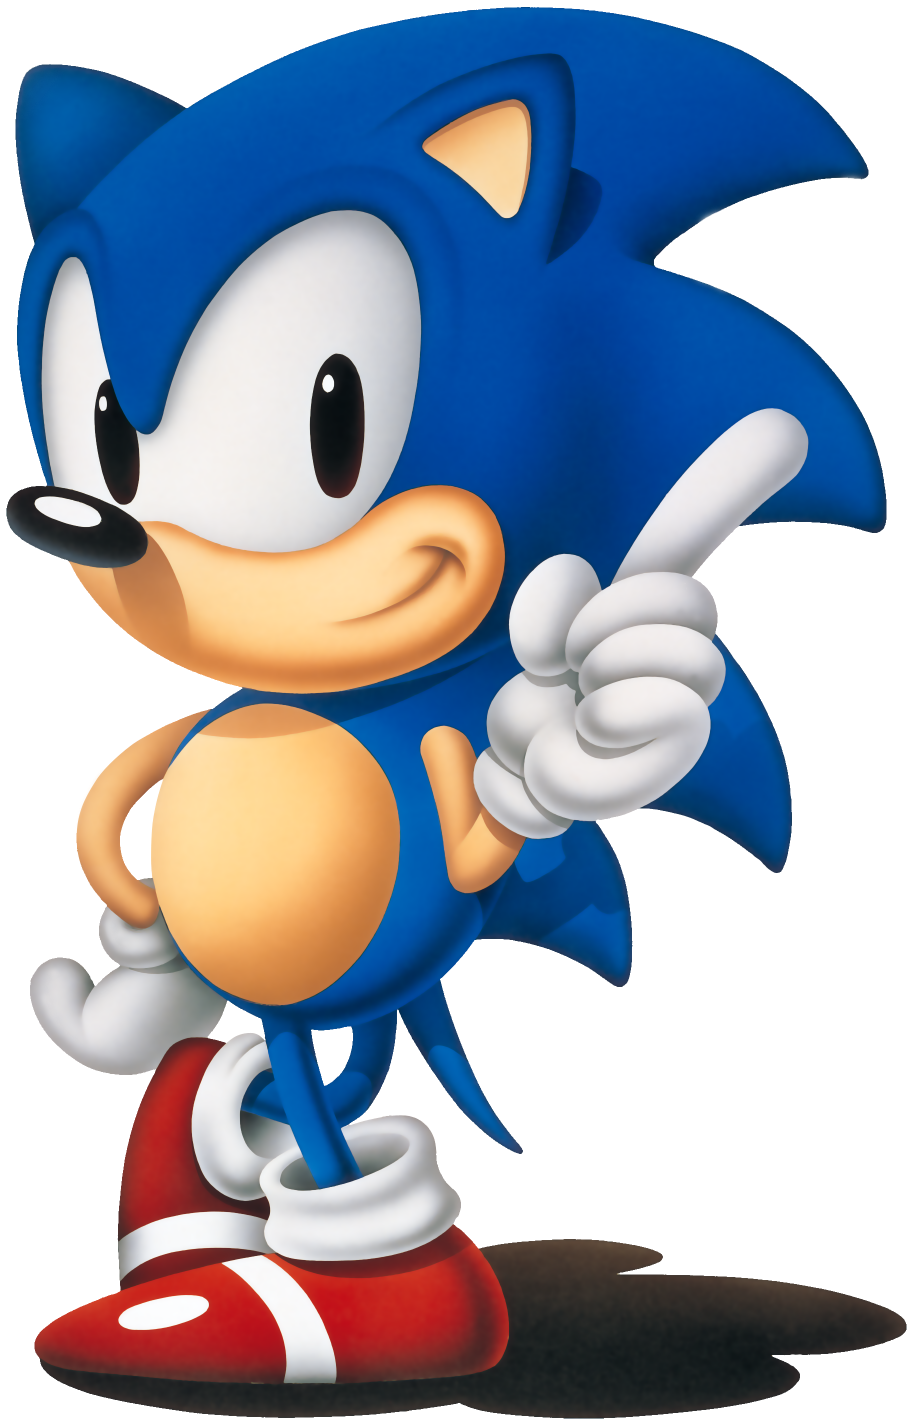 Sonic The Hedgehog Wallpapers Video Game Hq Sonic The Hedgehog